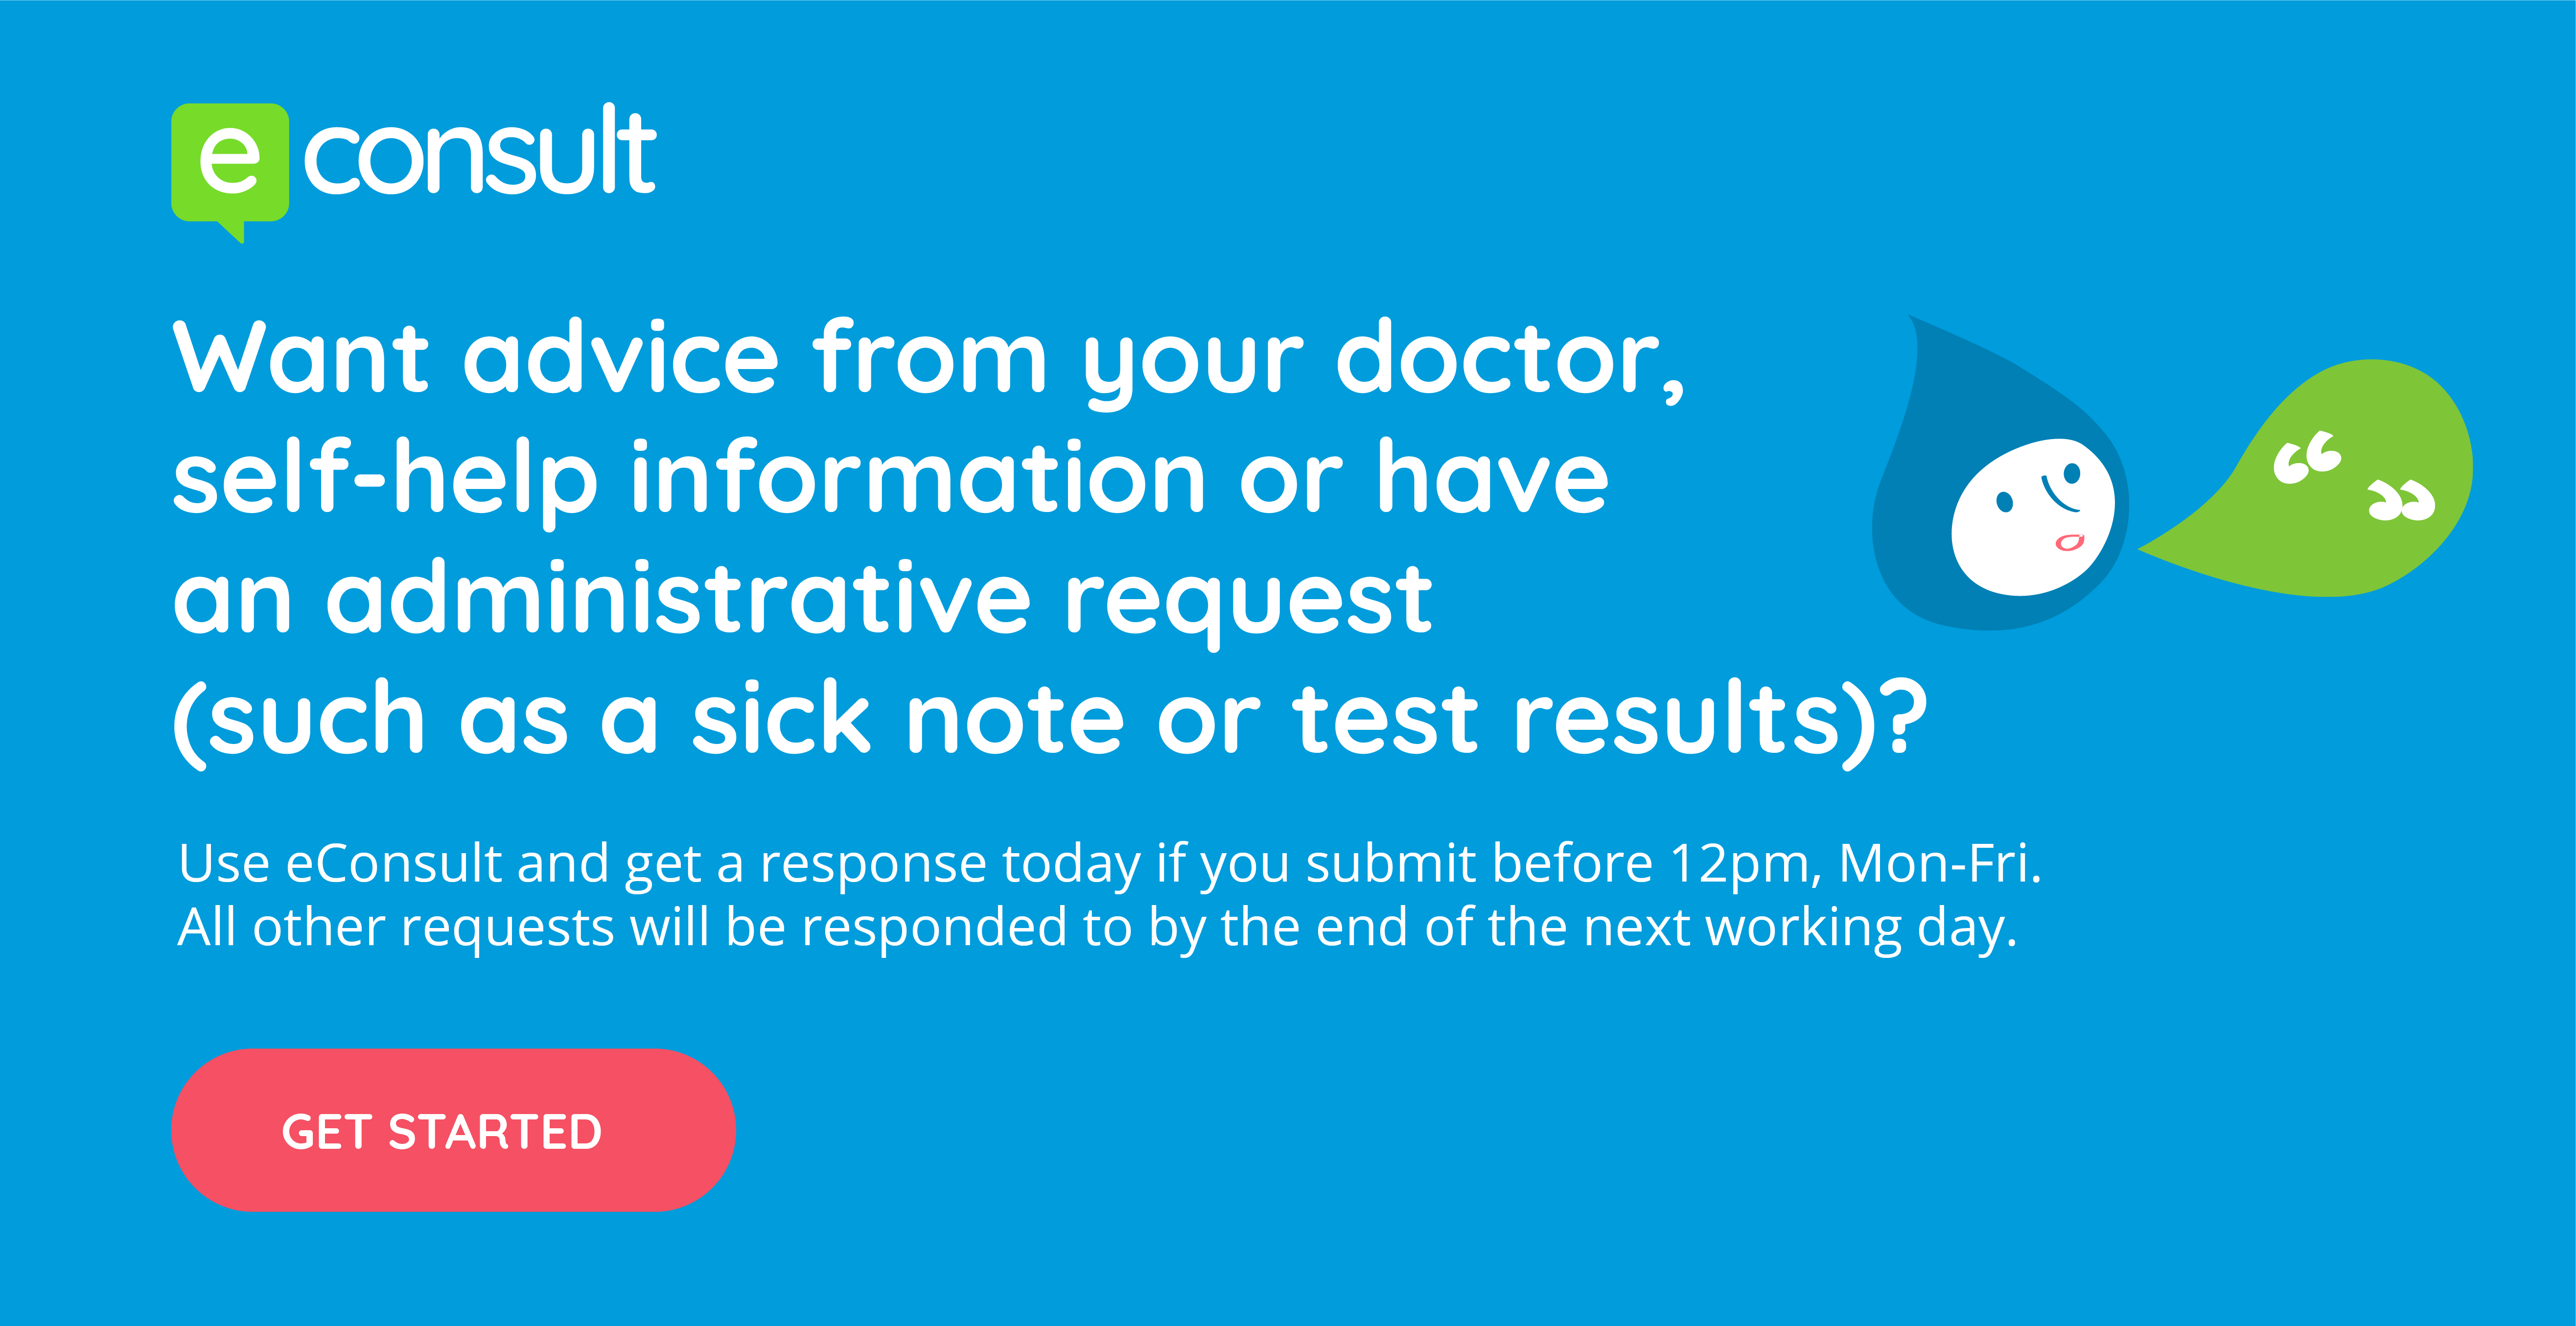 eConsult.  Want advice from your doctor, self-help information or have an administrative request (such as a sick note or test results).  Use eConsult and get a response today if you submit before 12pm, mon-fri.  All other requests will be responded to by the end of the next working day